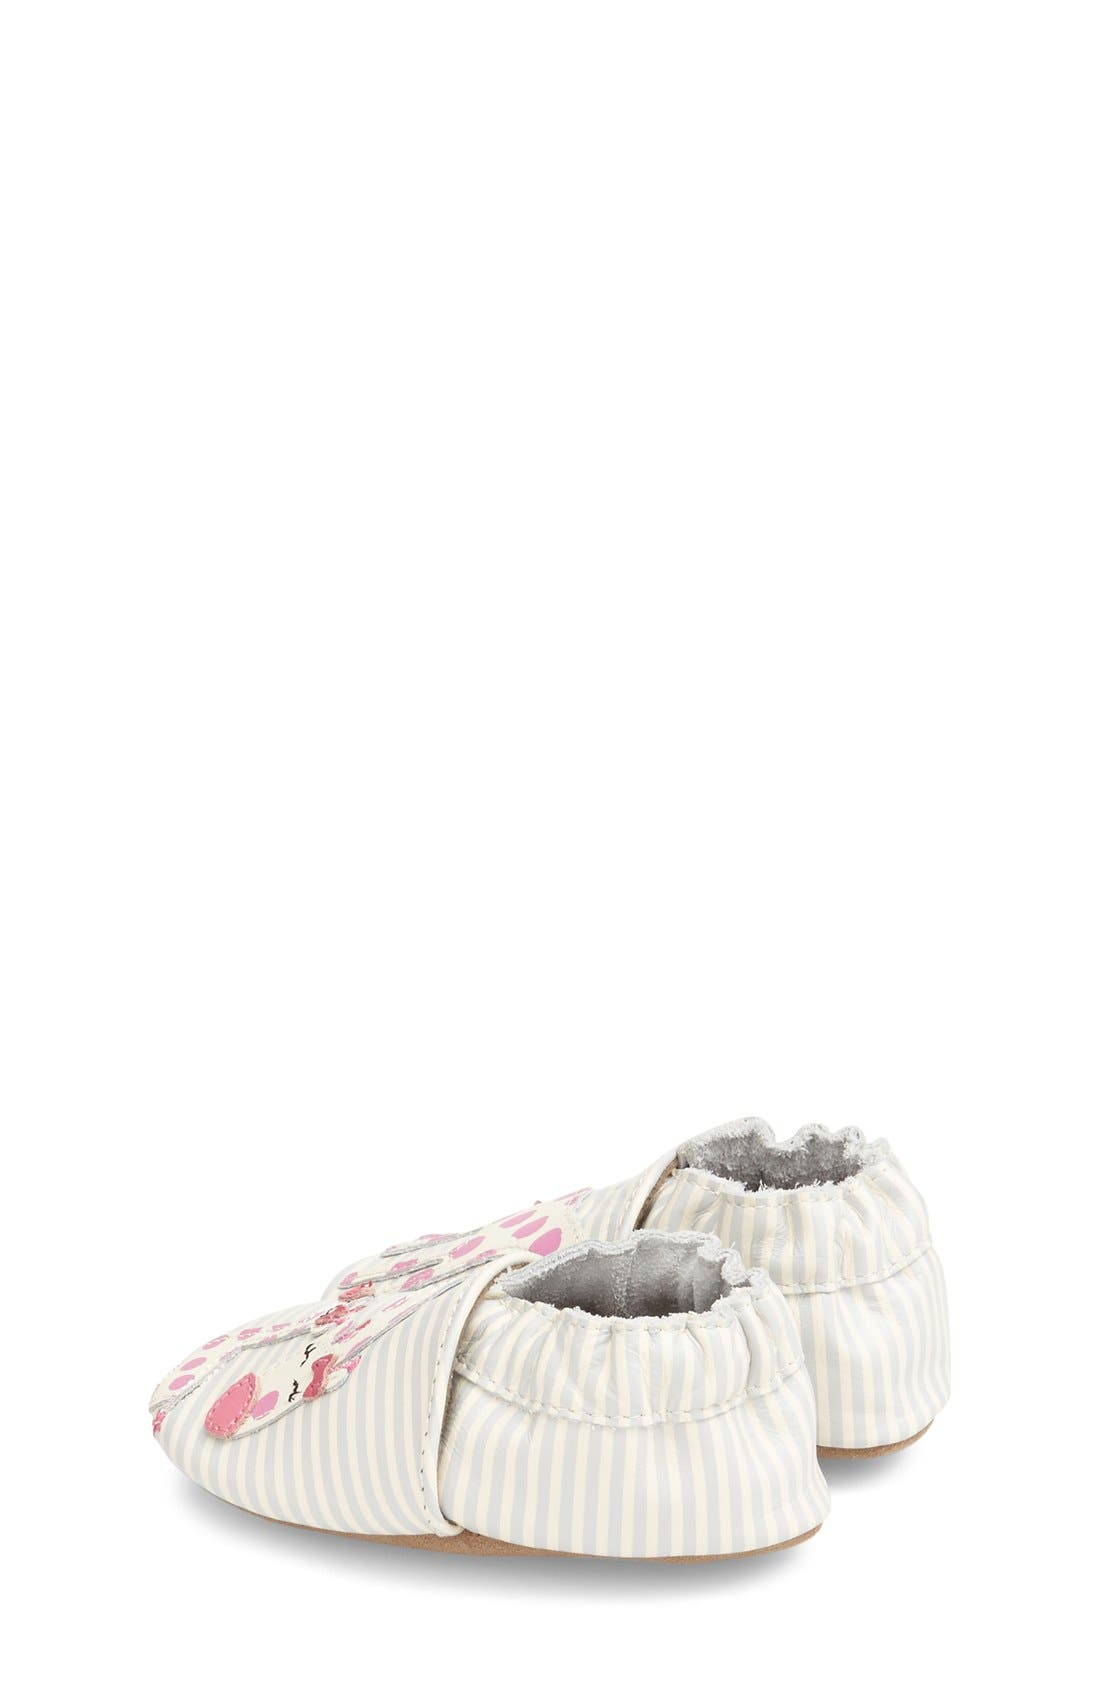 'Reaching for the Stars' Giraffe Crib Shoe,                             Alternate thumbnail 2, color,                             BEIGE